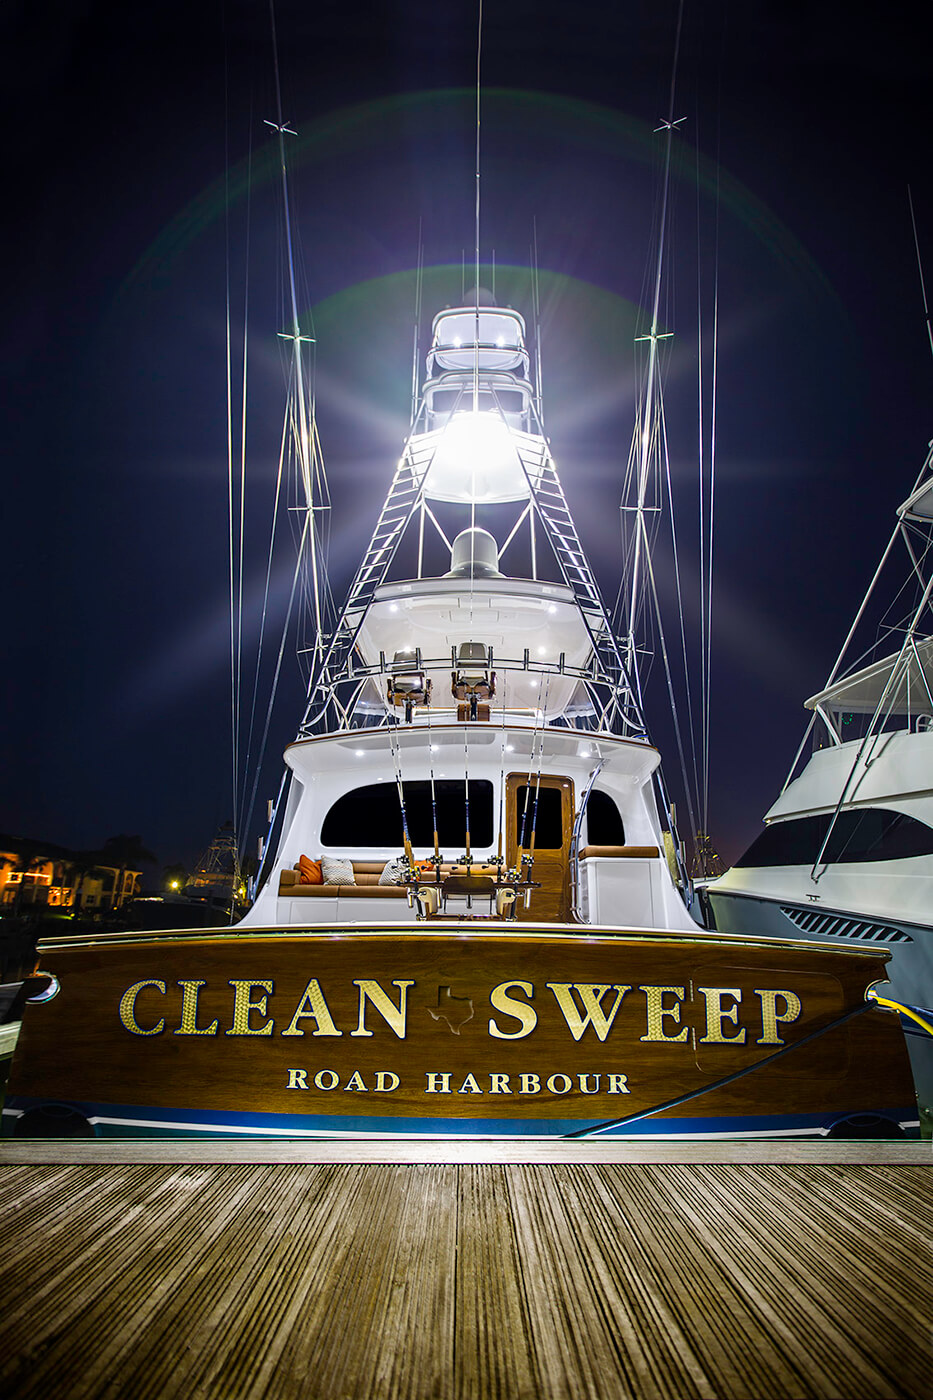 Clean Sweep Road Harbour BVI Boat Transom docked at night vessel name design lettering